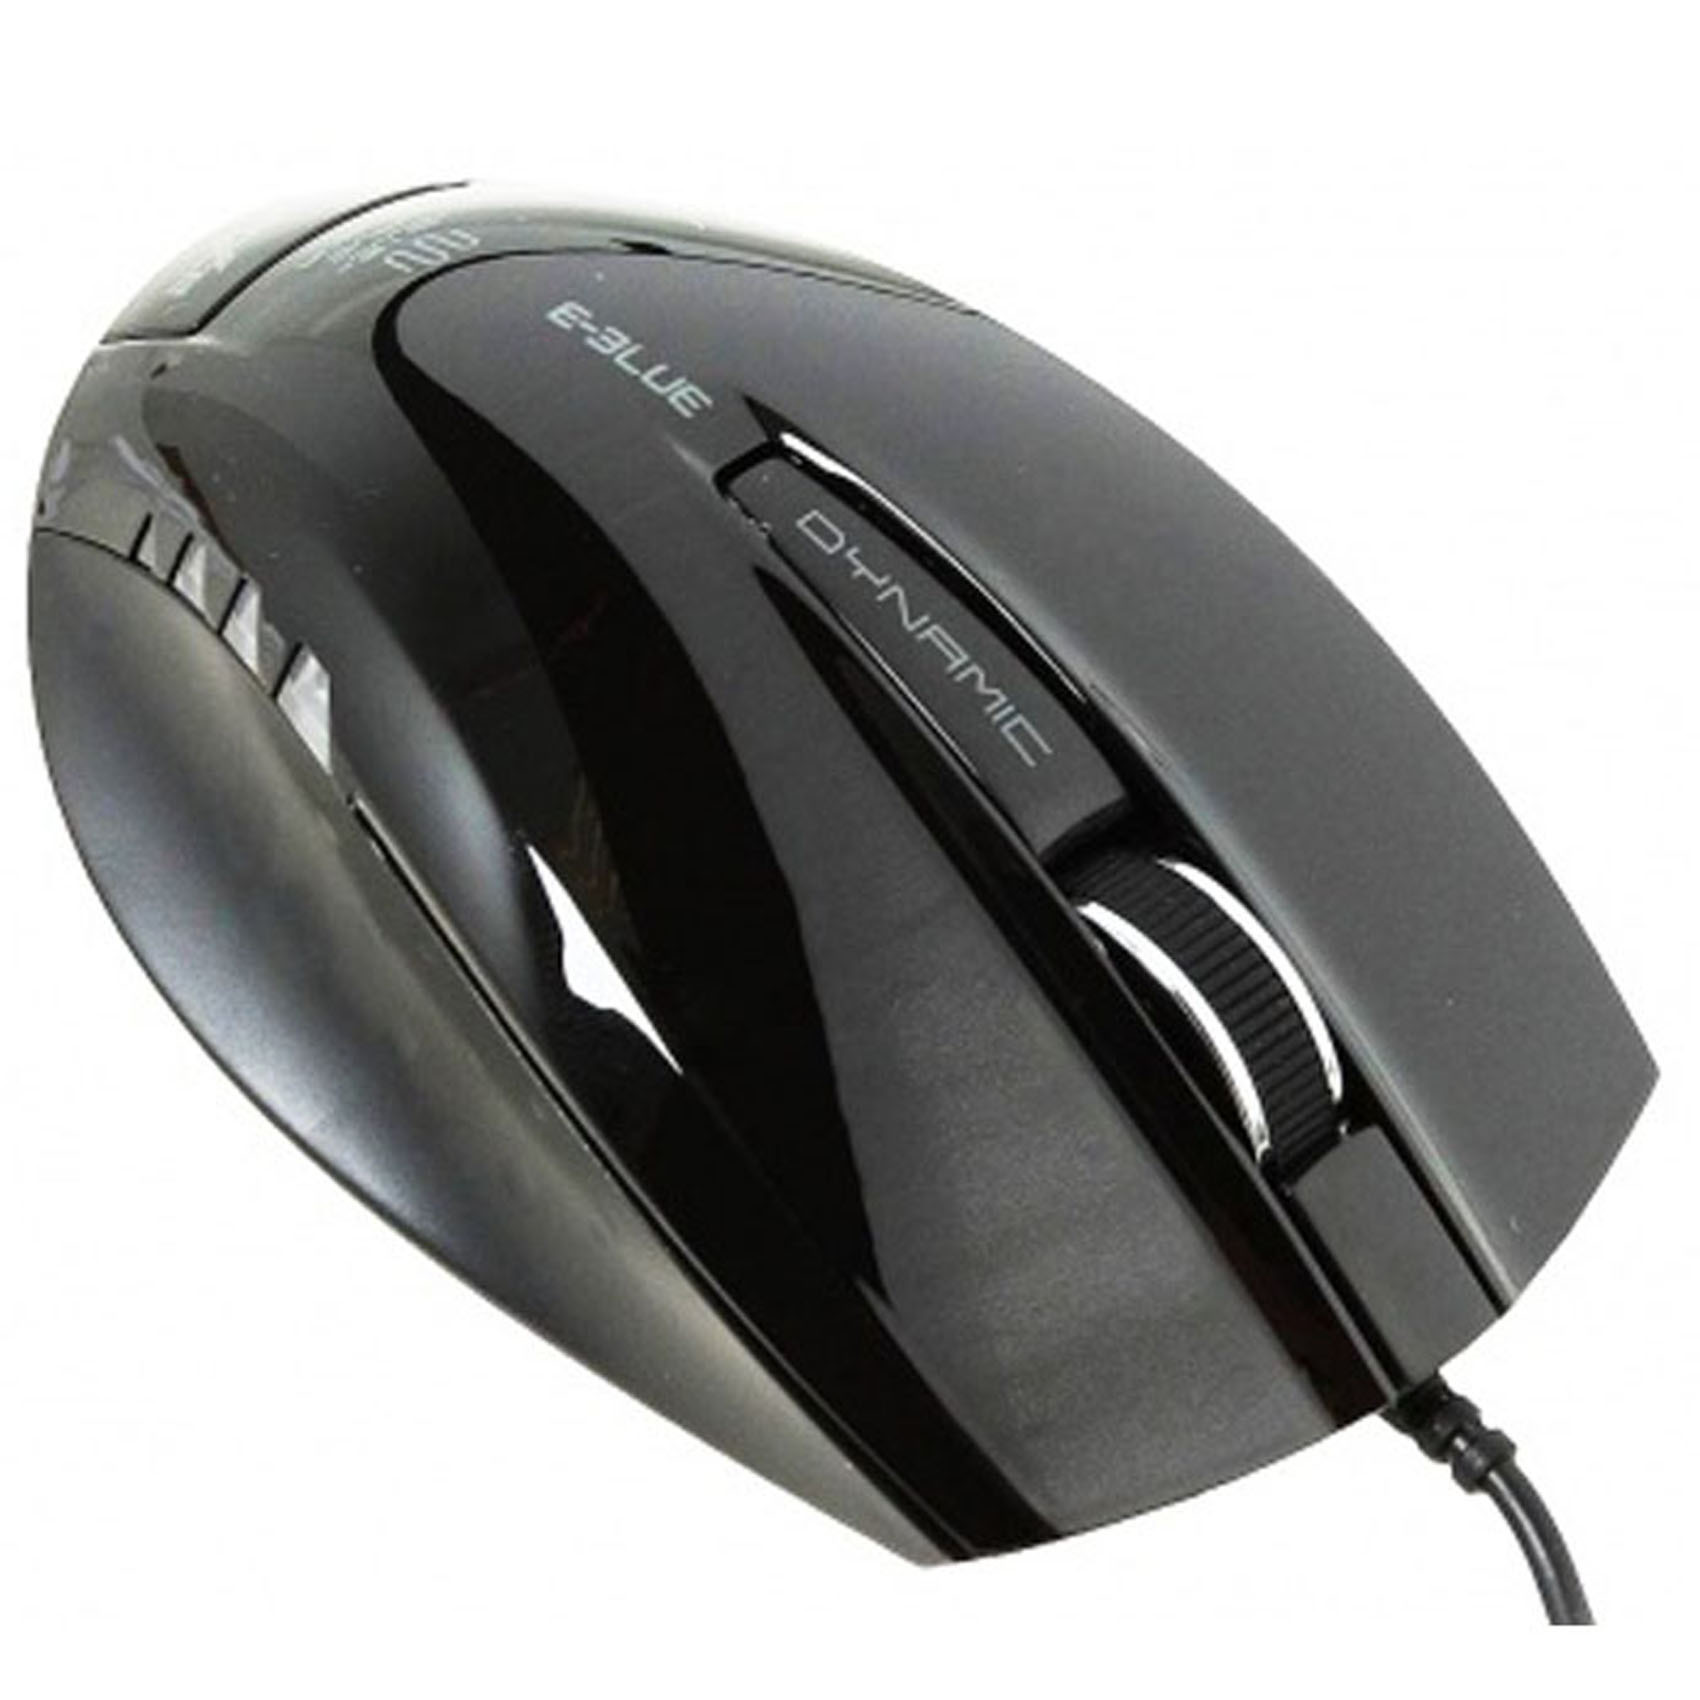 EBLUE GAM MOUSE EXTENCY BUILD-IN R